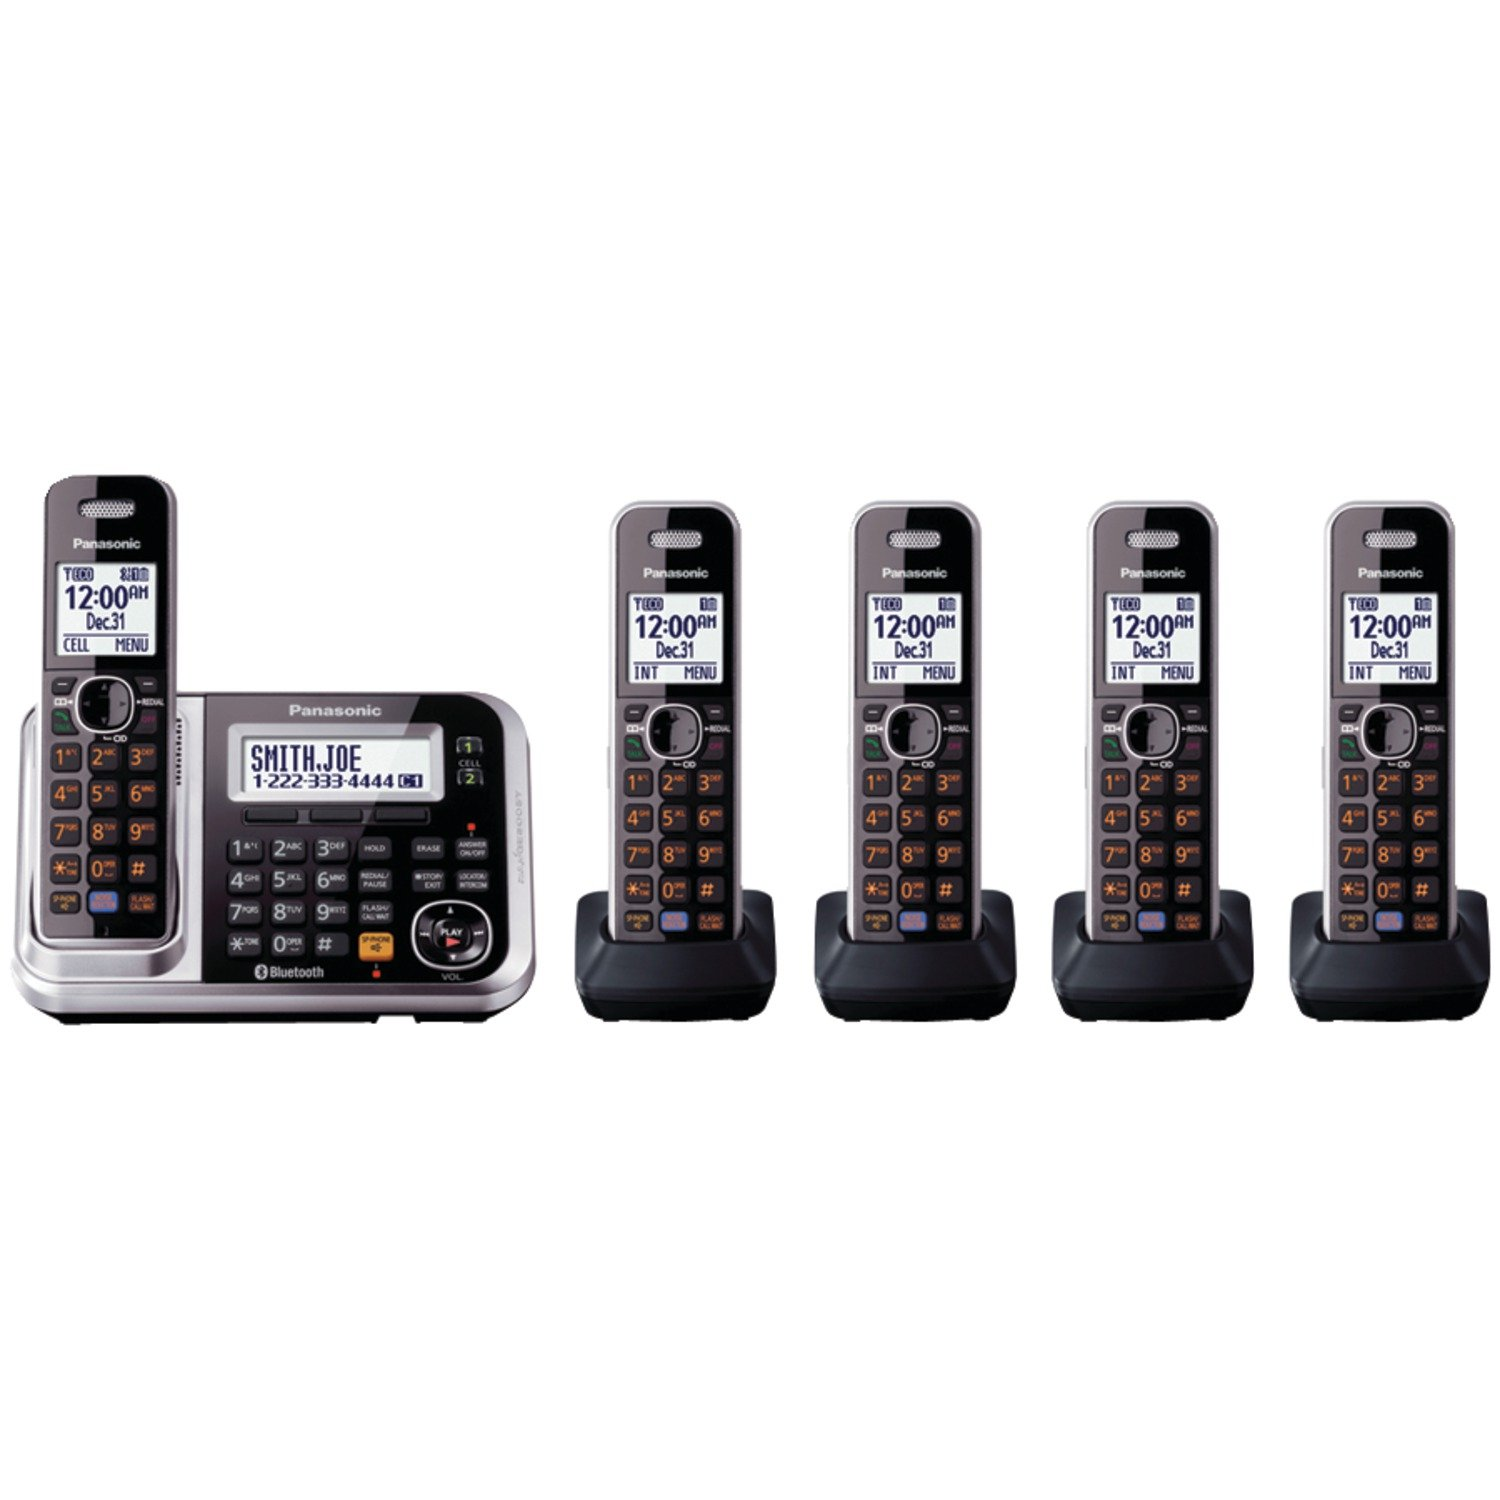 New panasonic kx tg7875s link2cell bluetooth dect 60 5 handest 885170106246 sciox Choice Image